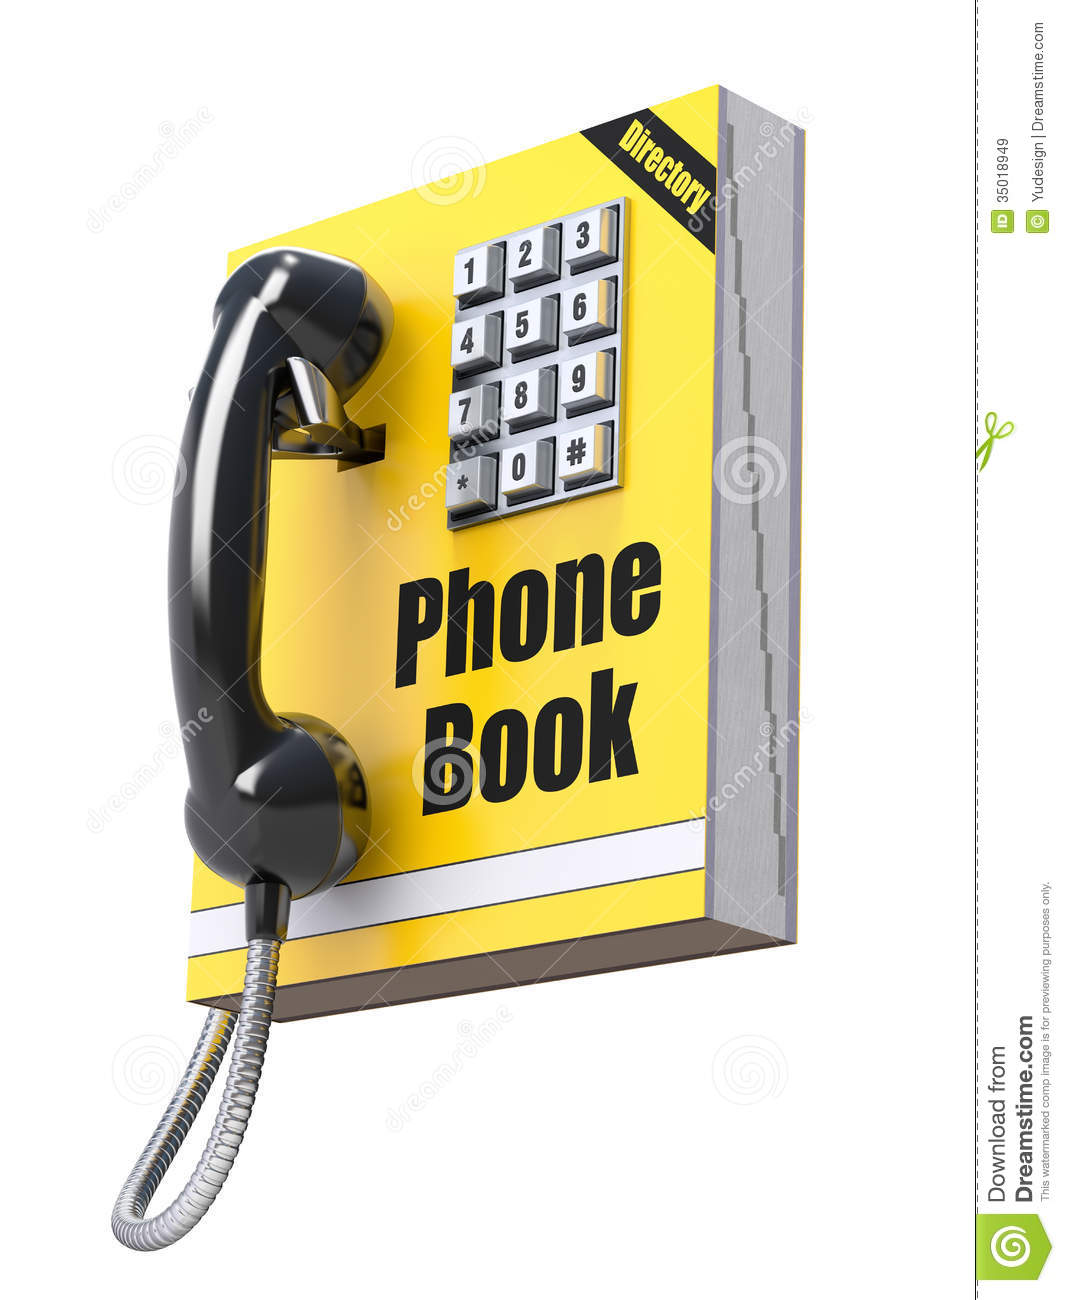 free clipart phone book - photo #14